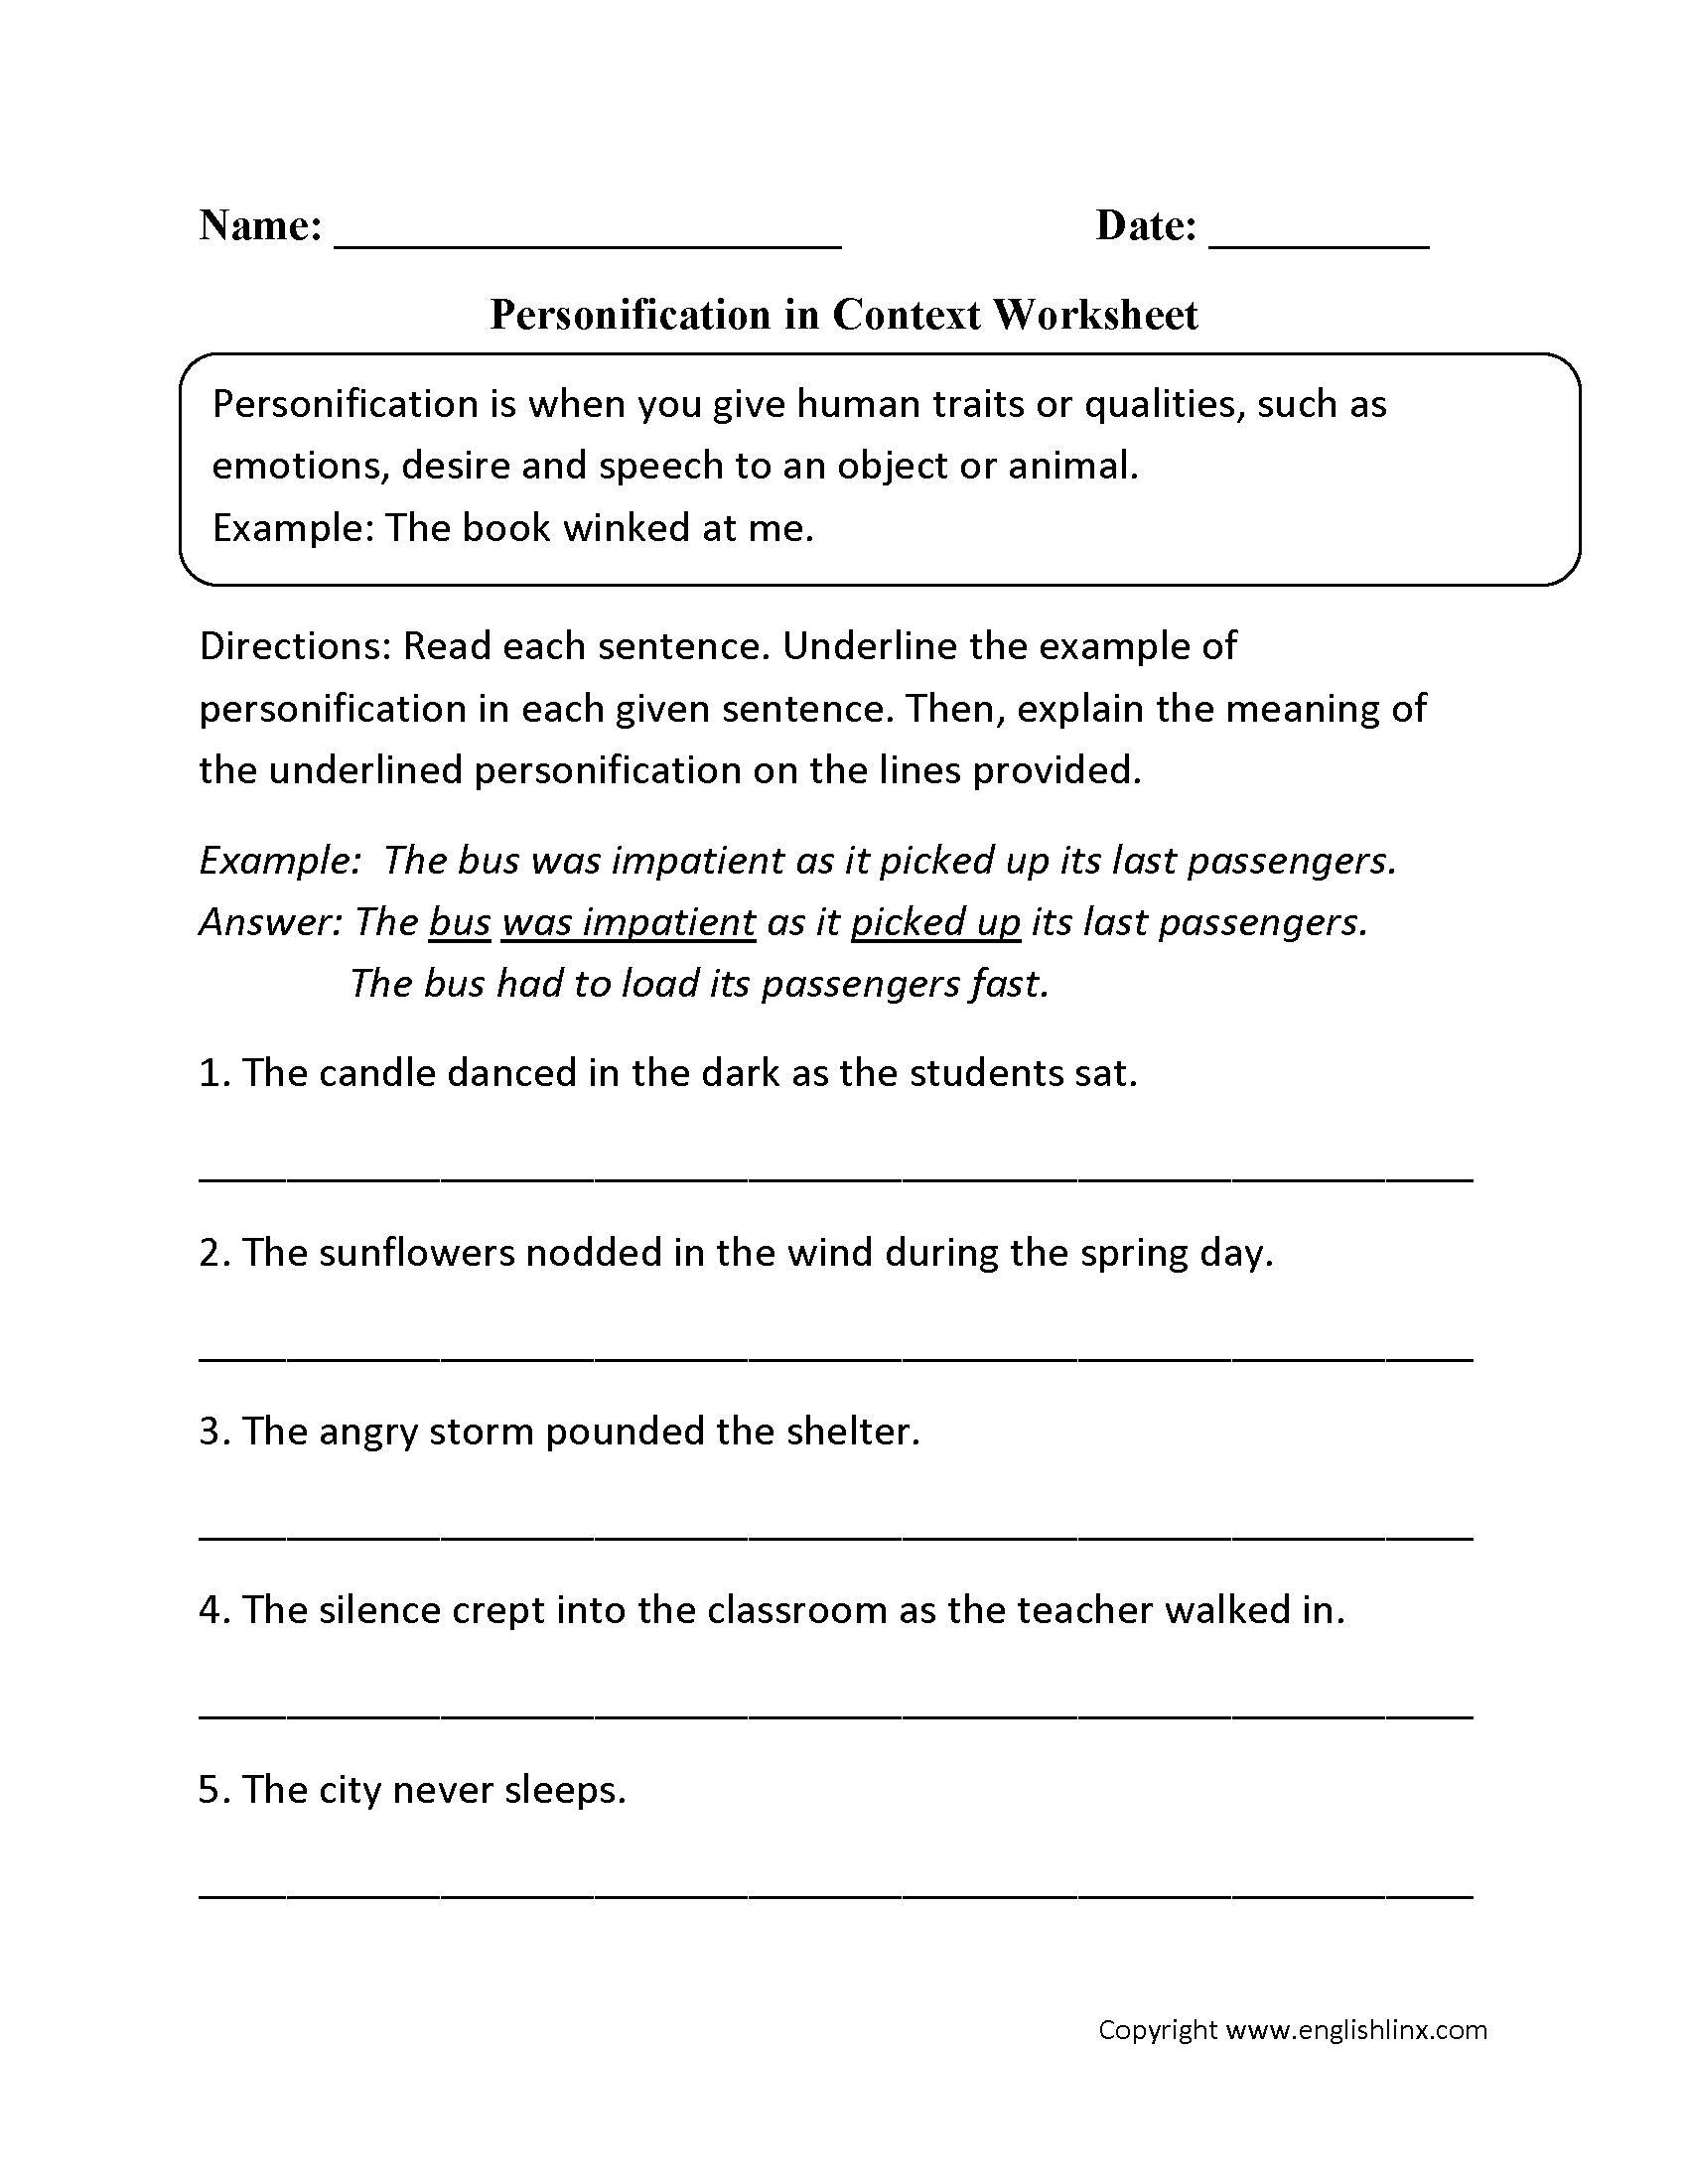 Personification Figurative Language Worksheets | School/Teaching ...